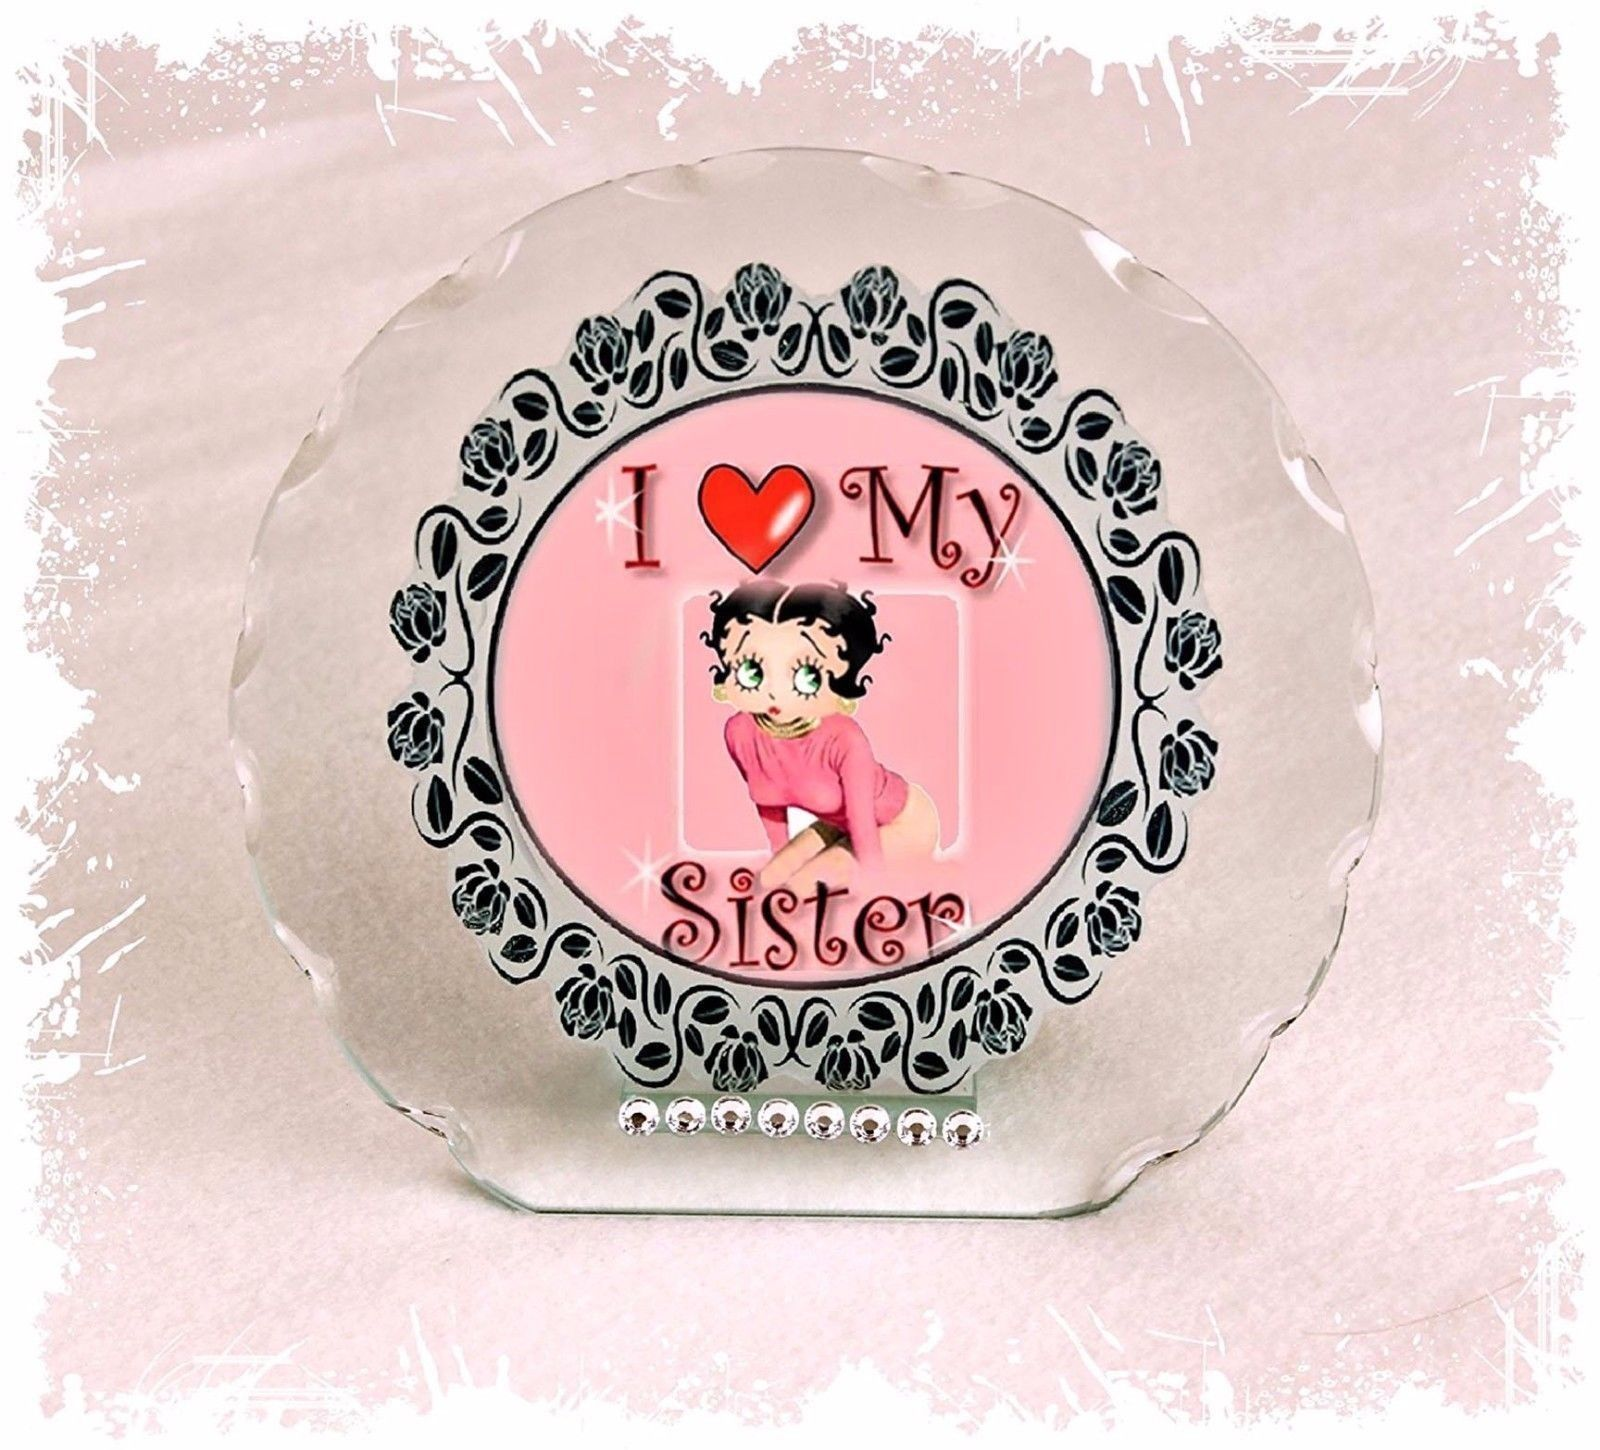 Betty Boop Diamante Plaque gift for Sister Perfect keepsake Limited Edition #1